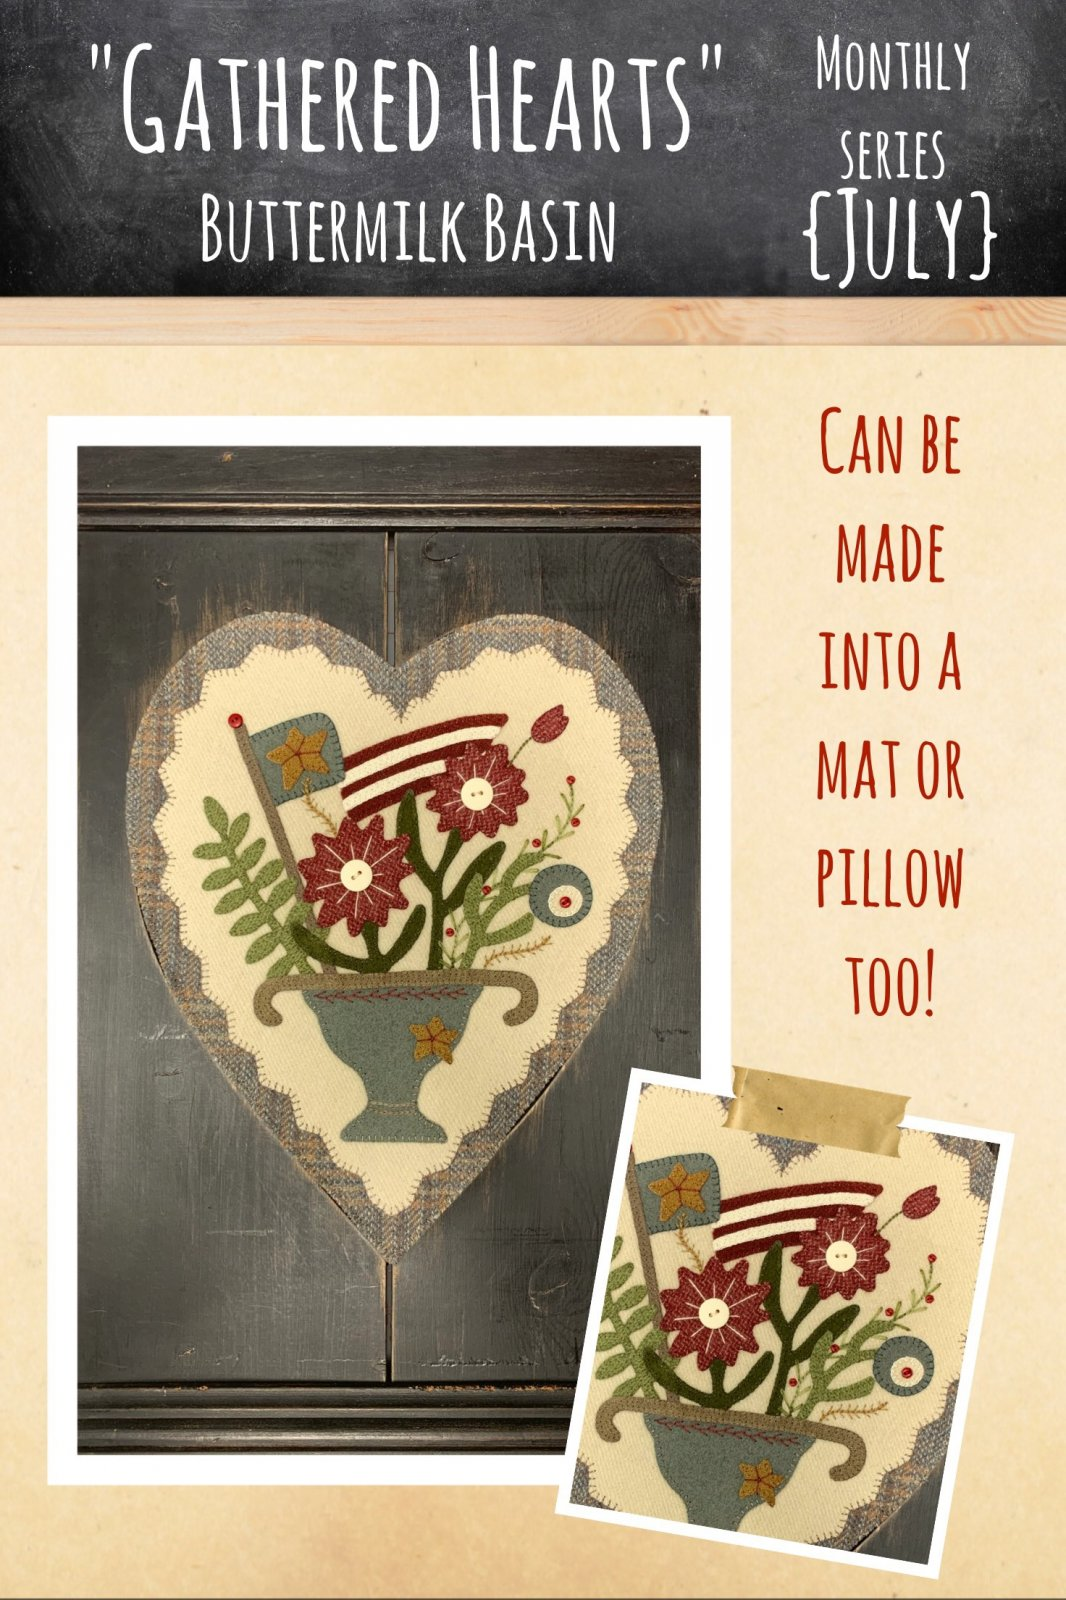 Gathered Hearts * July Kit & Pattern